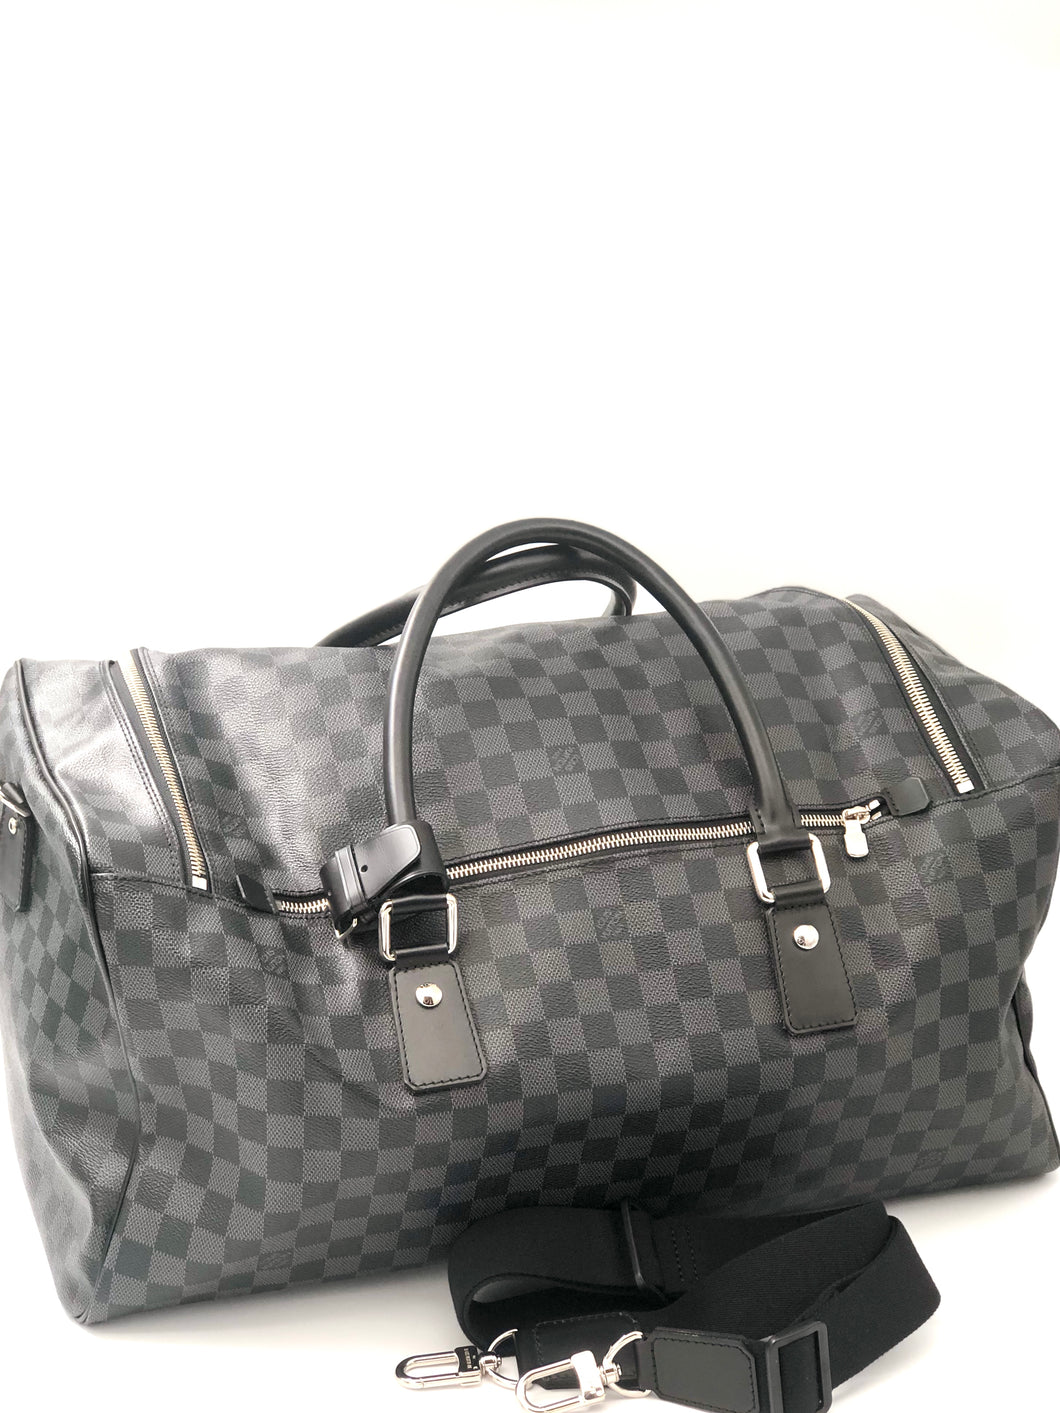 Louis Vuitton Damier Graphite Canvas Roadster Duffel Bag